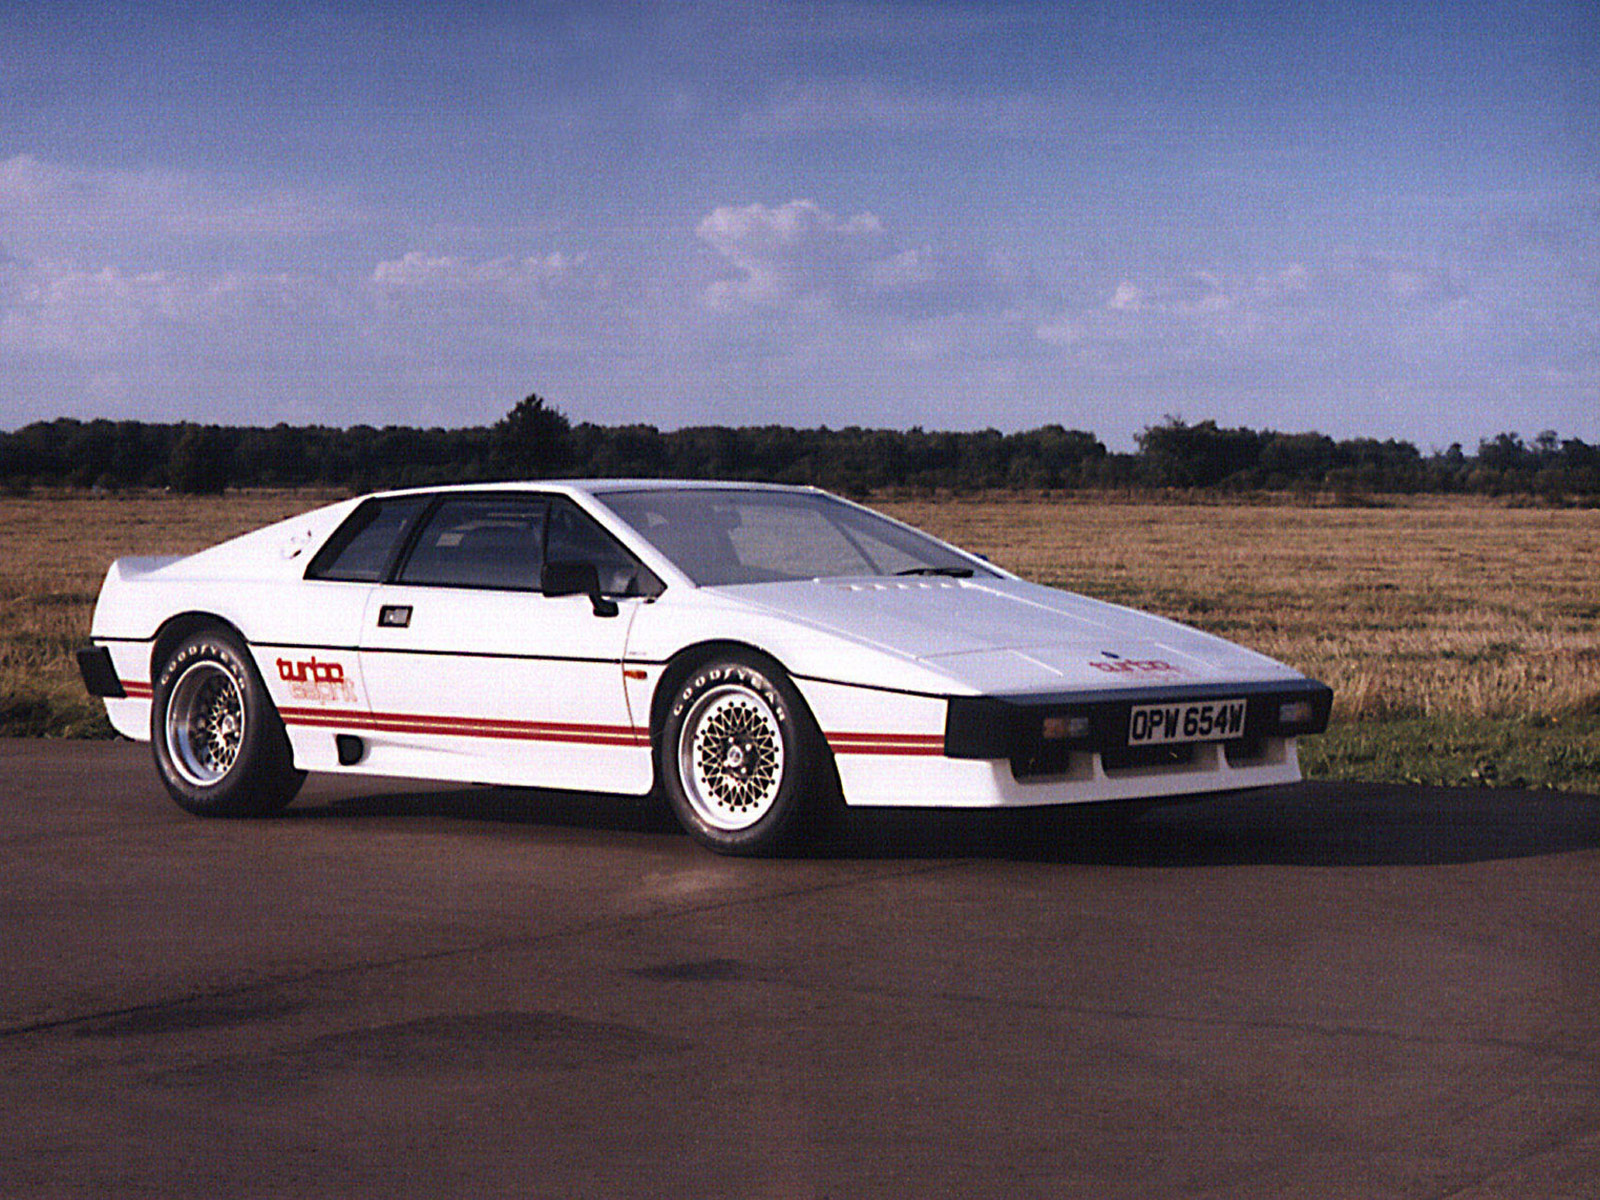 1980 lotus esprit turbo car picture. Black Bedroom Furniture Sets. Home Design Ideas